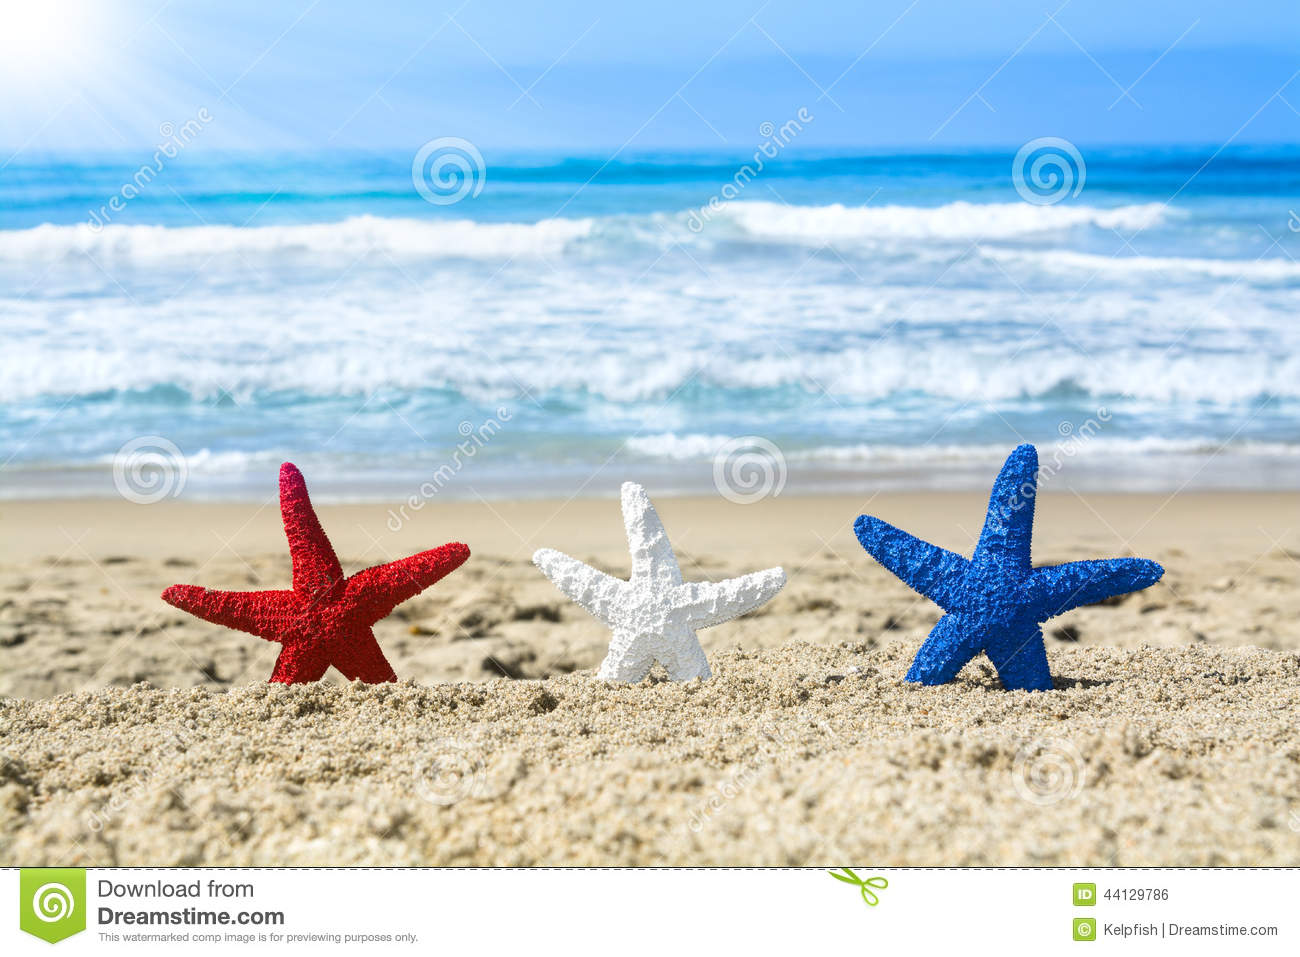 Stock Photo Starfish Beach July Fourth Conceptual Summer Holiday Image Three Red White Blue Overlooking Turquoise Ocean Image44129786 on seaside house plans